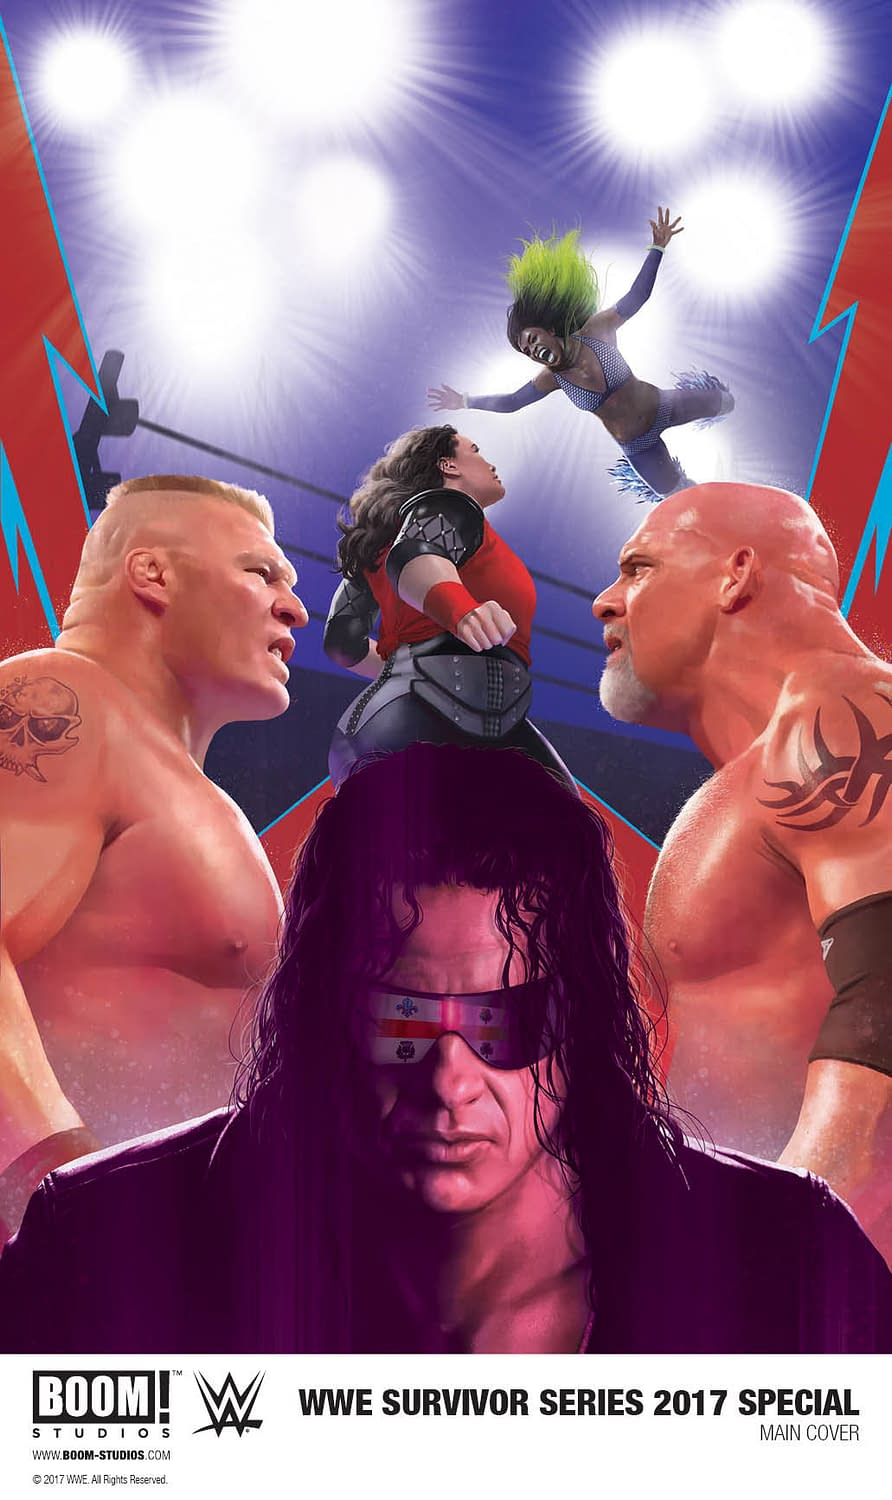 BOOM! Announces WWE Survivor Series Special; Plus An Alternate Reality Montreal Screwjob?!